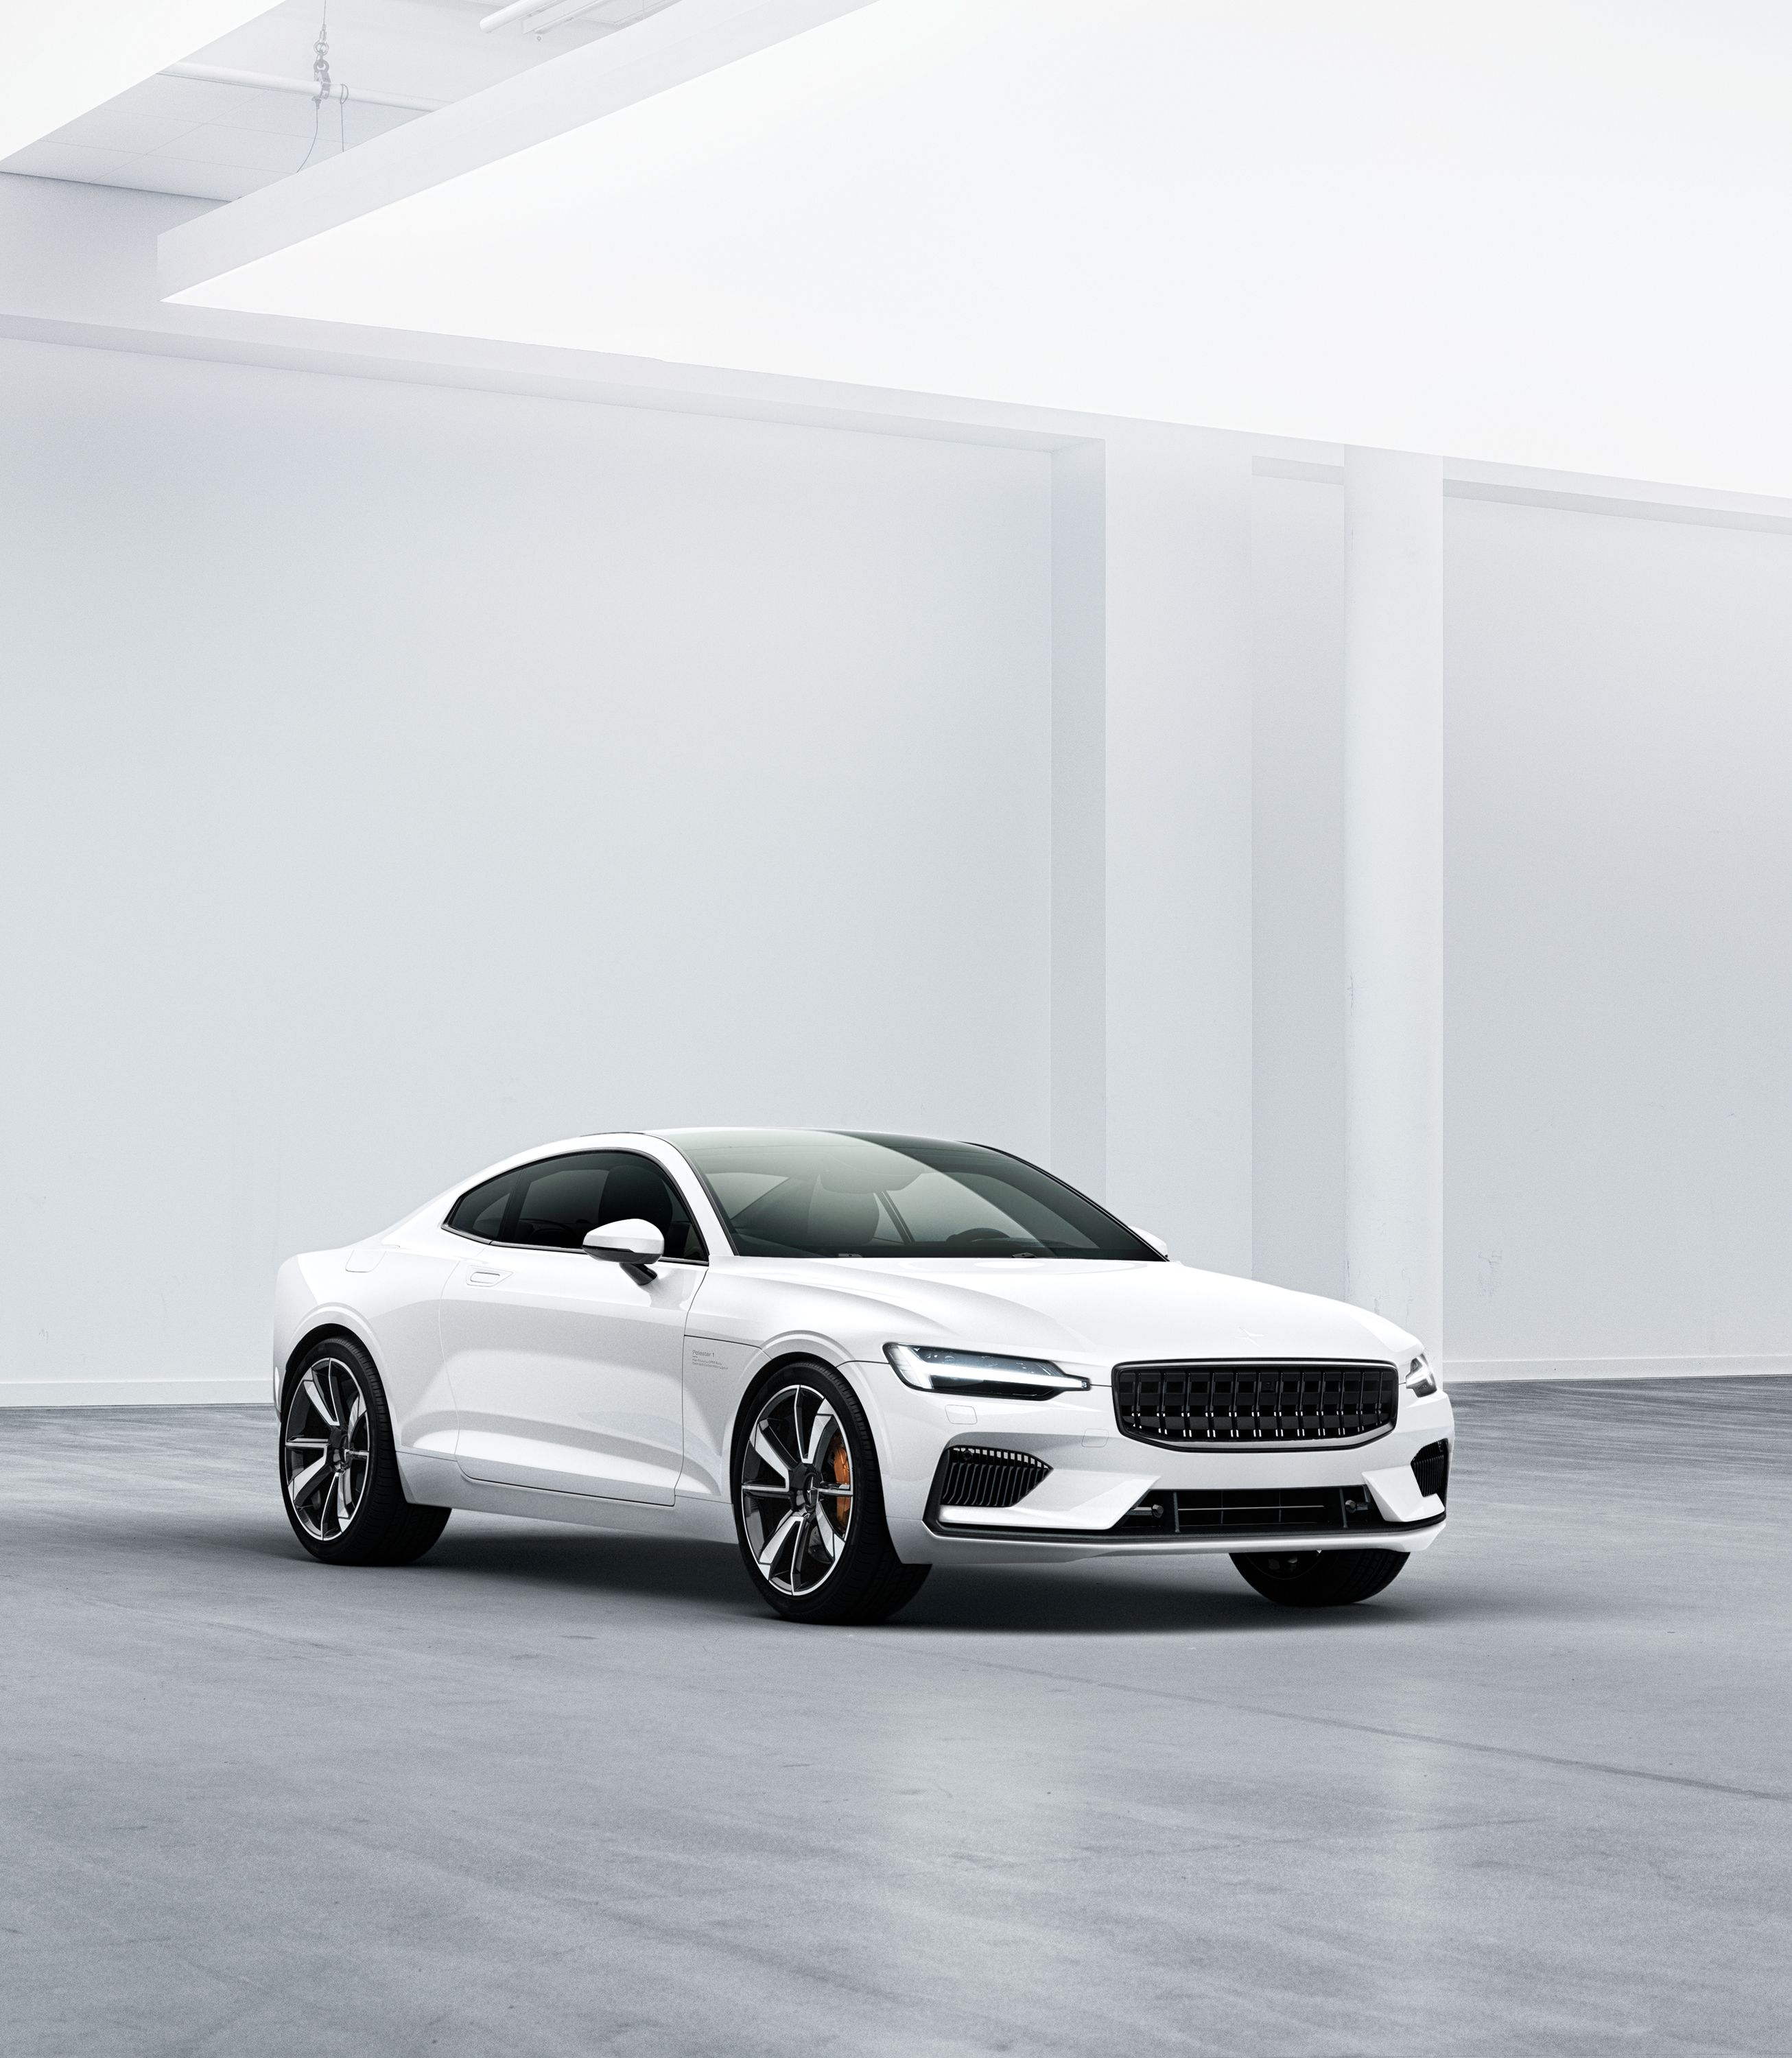 Polestar Unveils Its First Car The Polestar 1 And